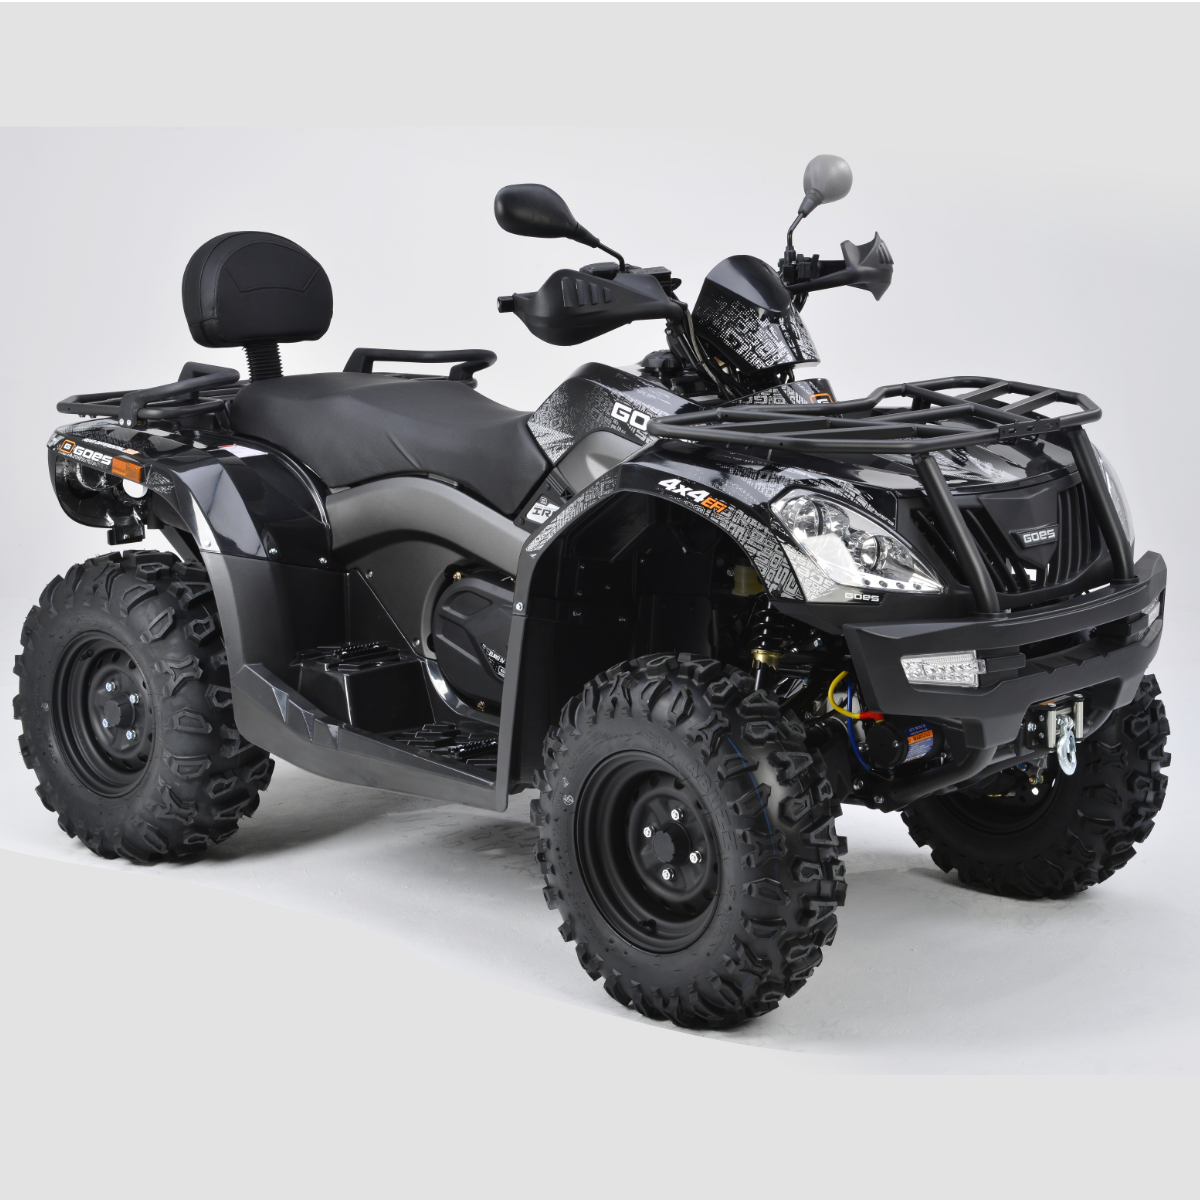 Goes Iron Basic 450i Max 4x4 EURO4